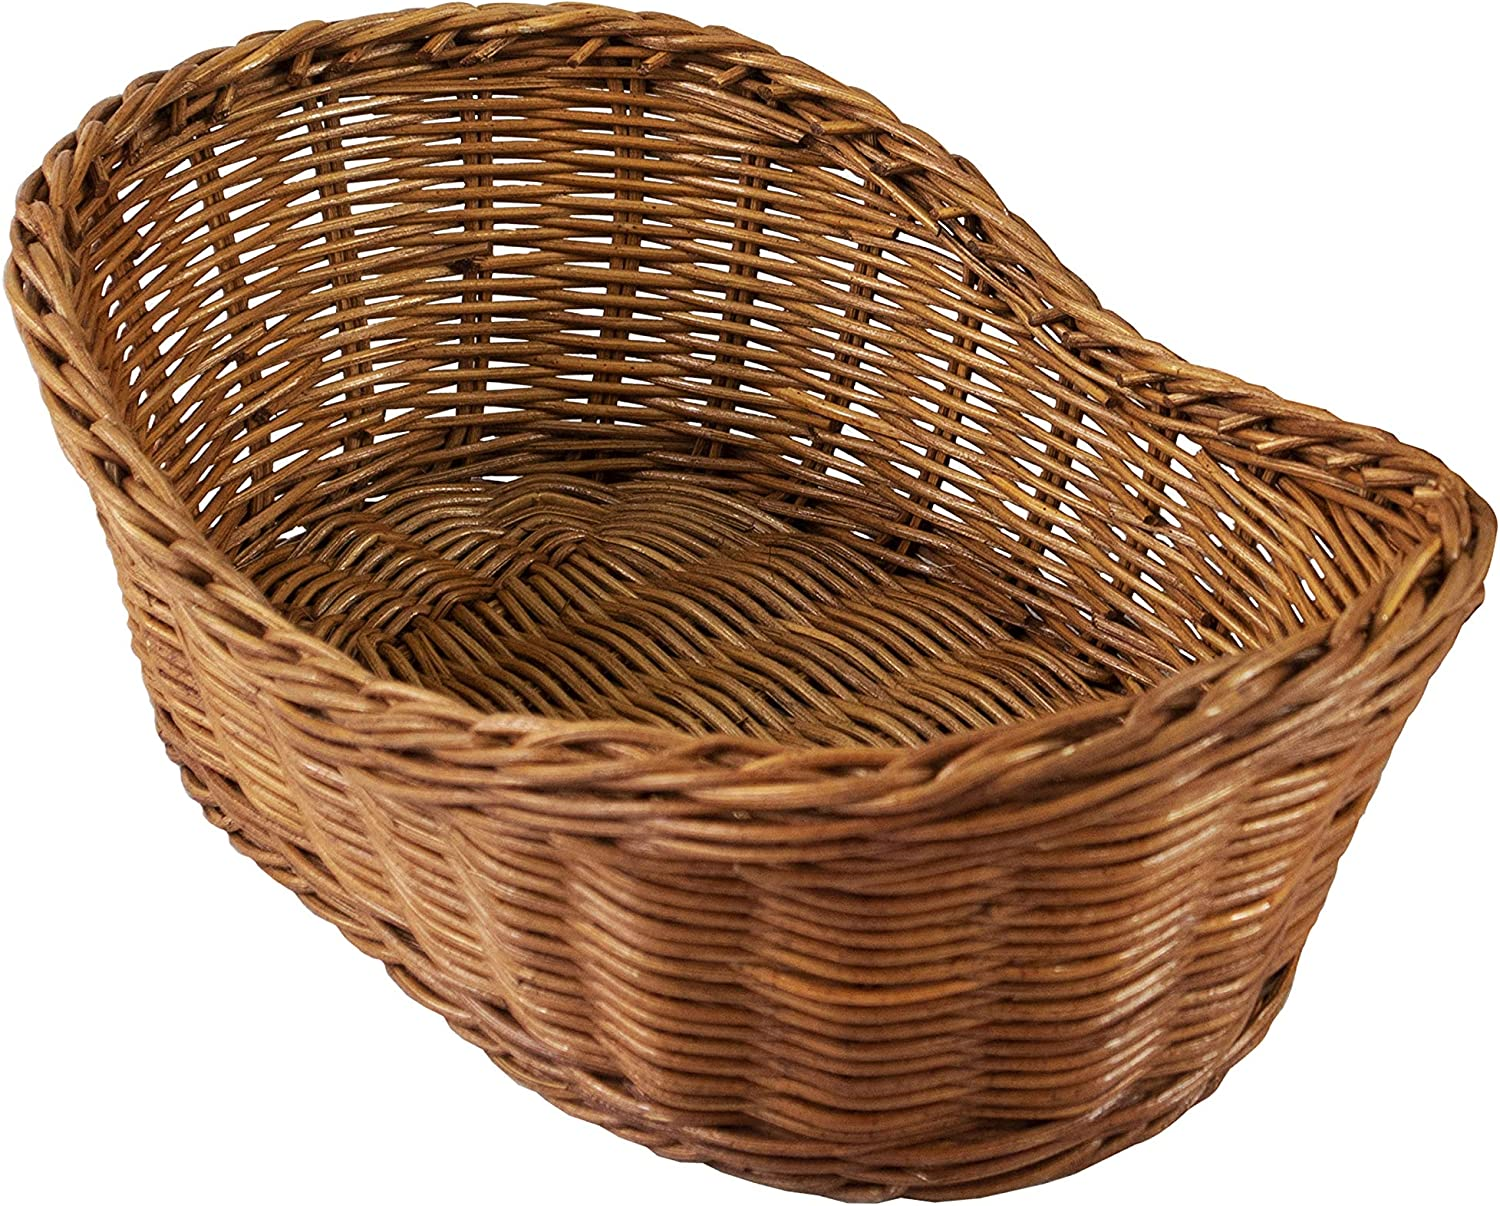 Wicker Woven Serving Baskets for Bread Fruit Vegetables Restaurant Serving /& Tabletop Display Baskets 14 Oval 2